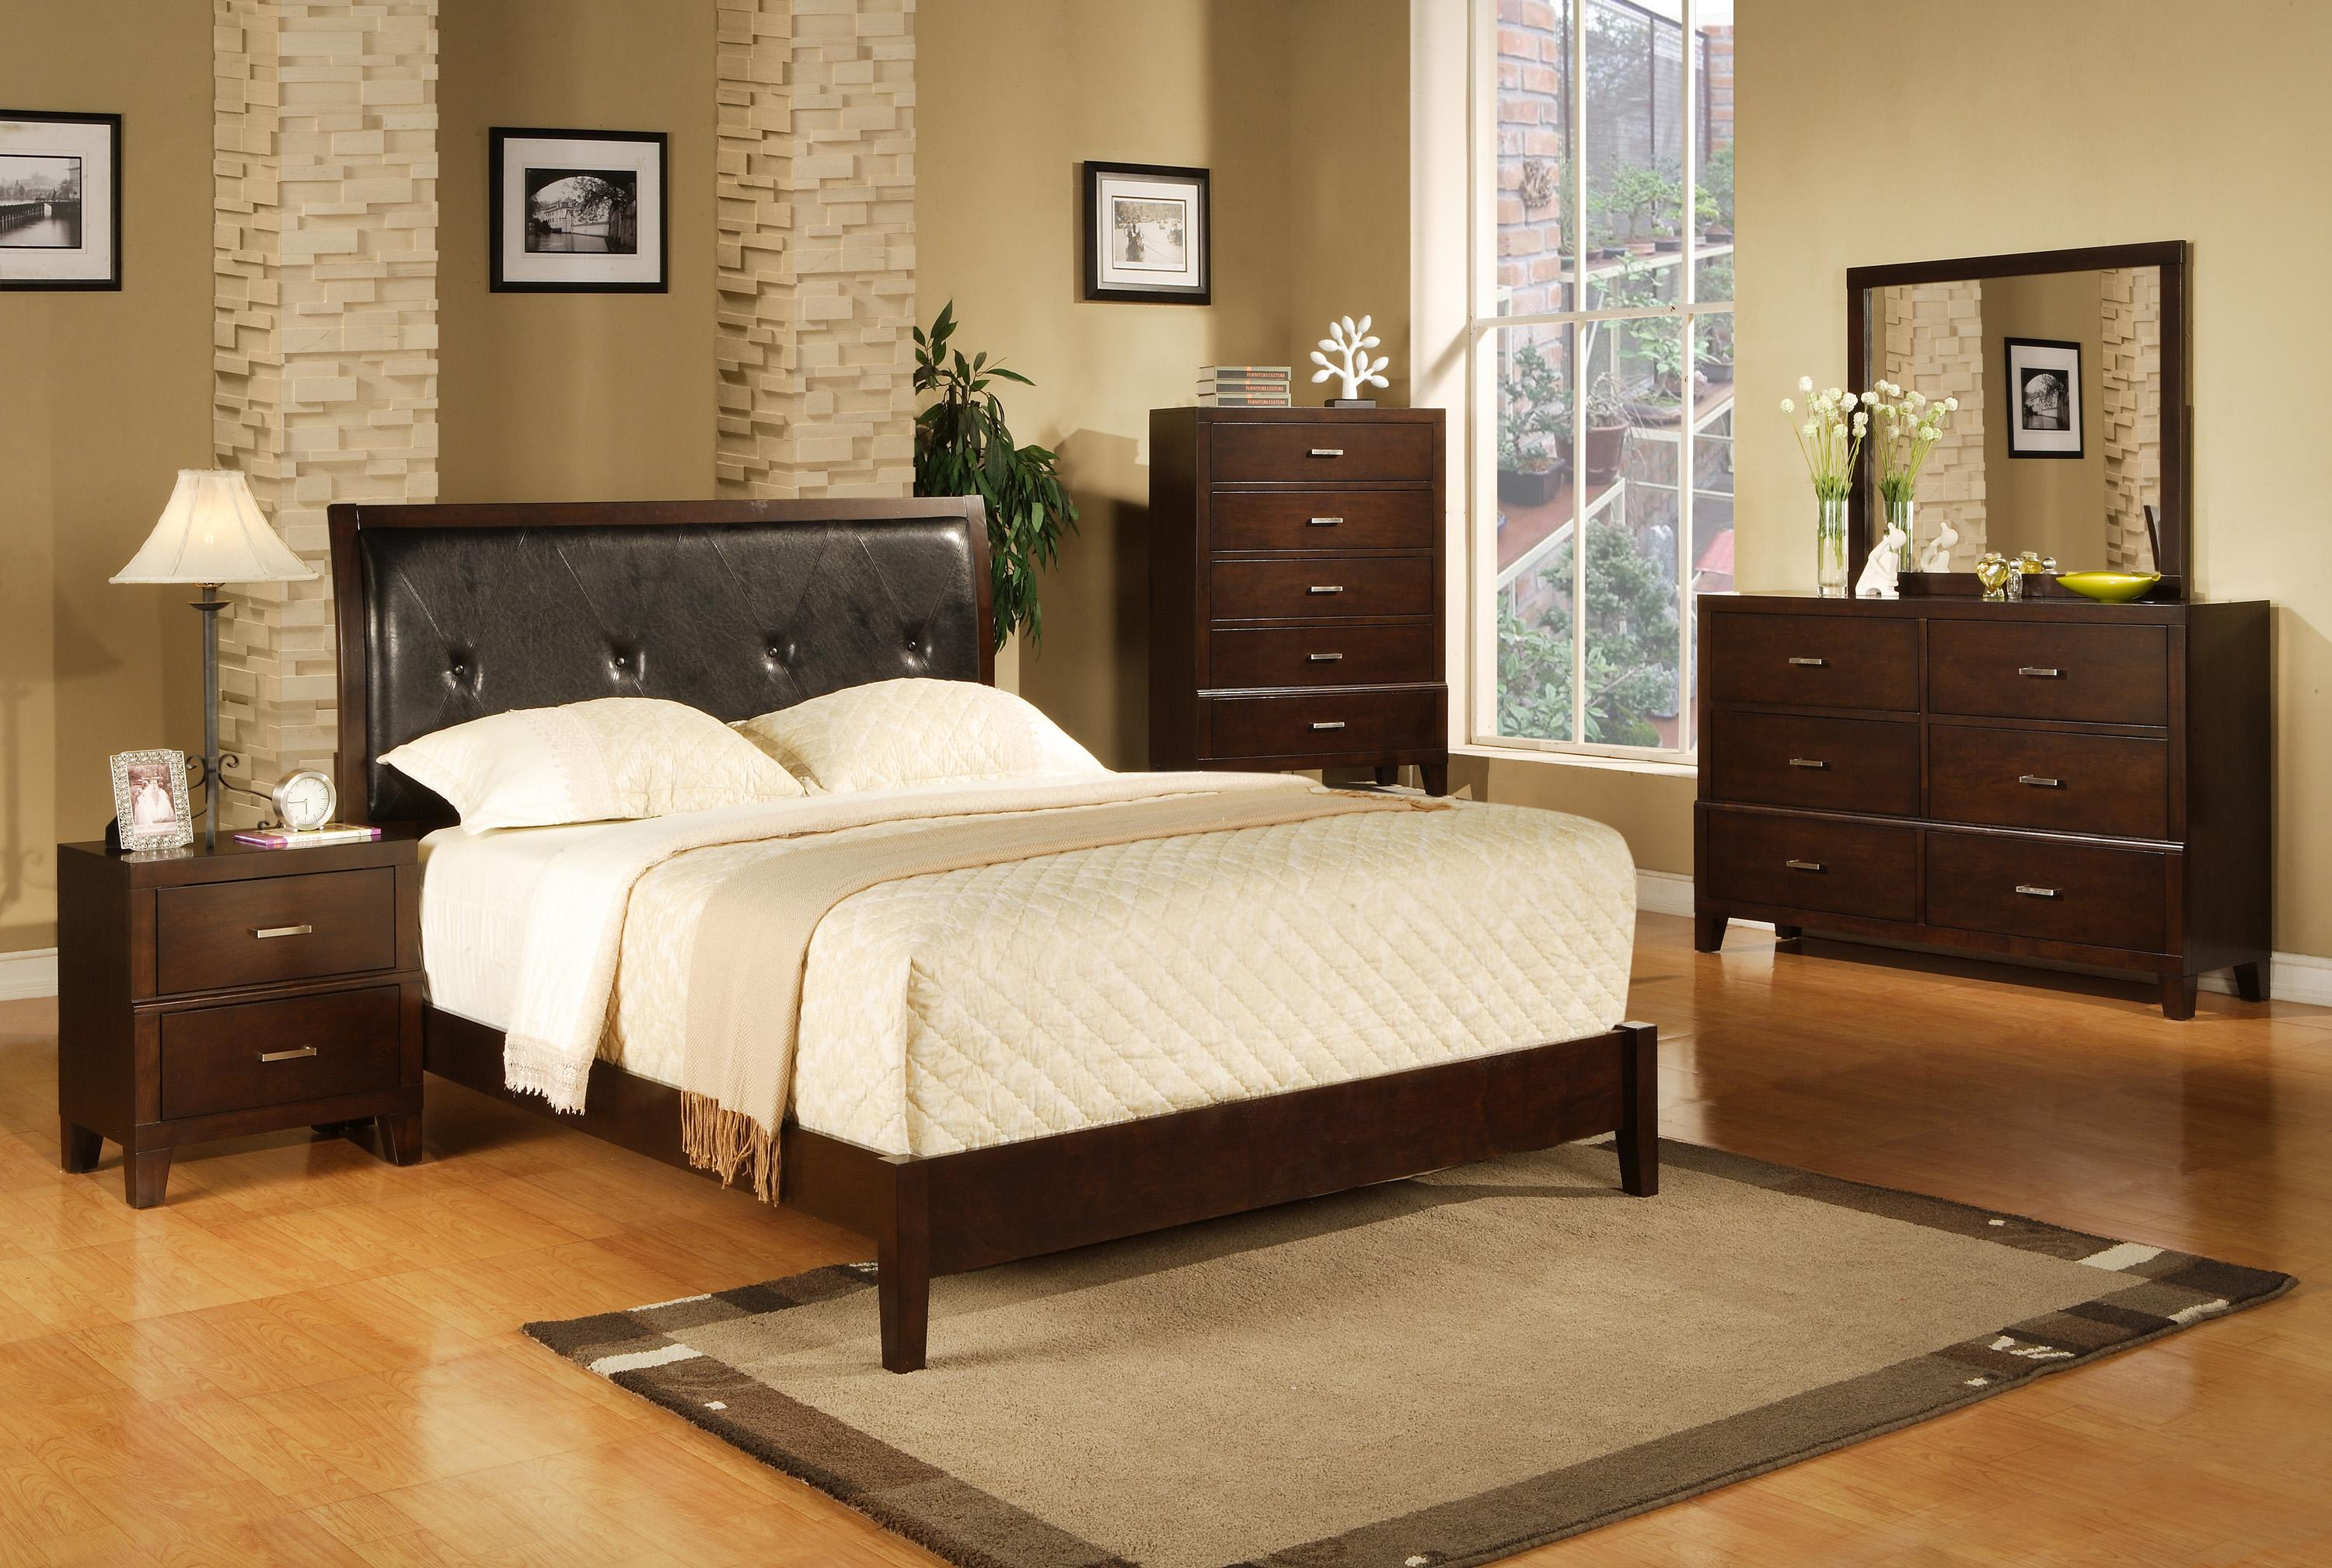 Crown Mark Serena Bedroom Group - Item Number: B8100 T Bedroom Group 1